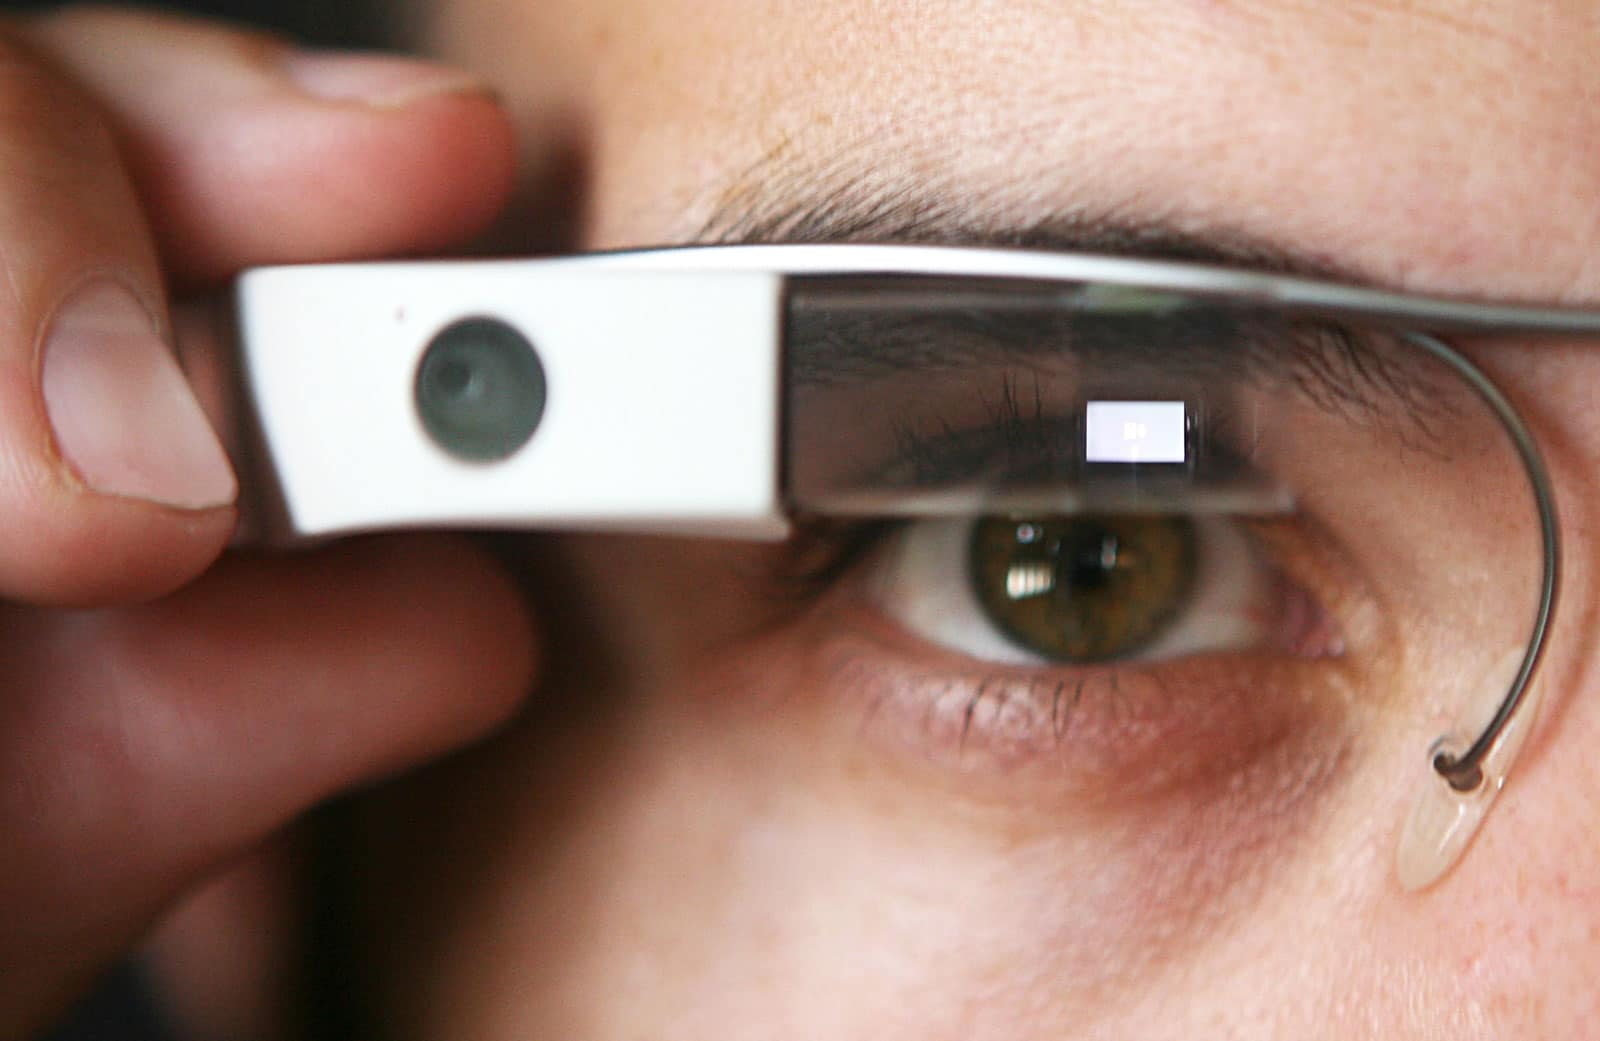 streye google glass enterprise edition